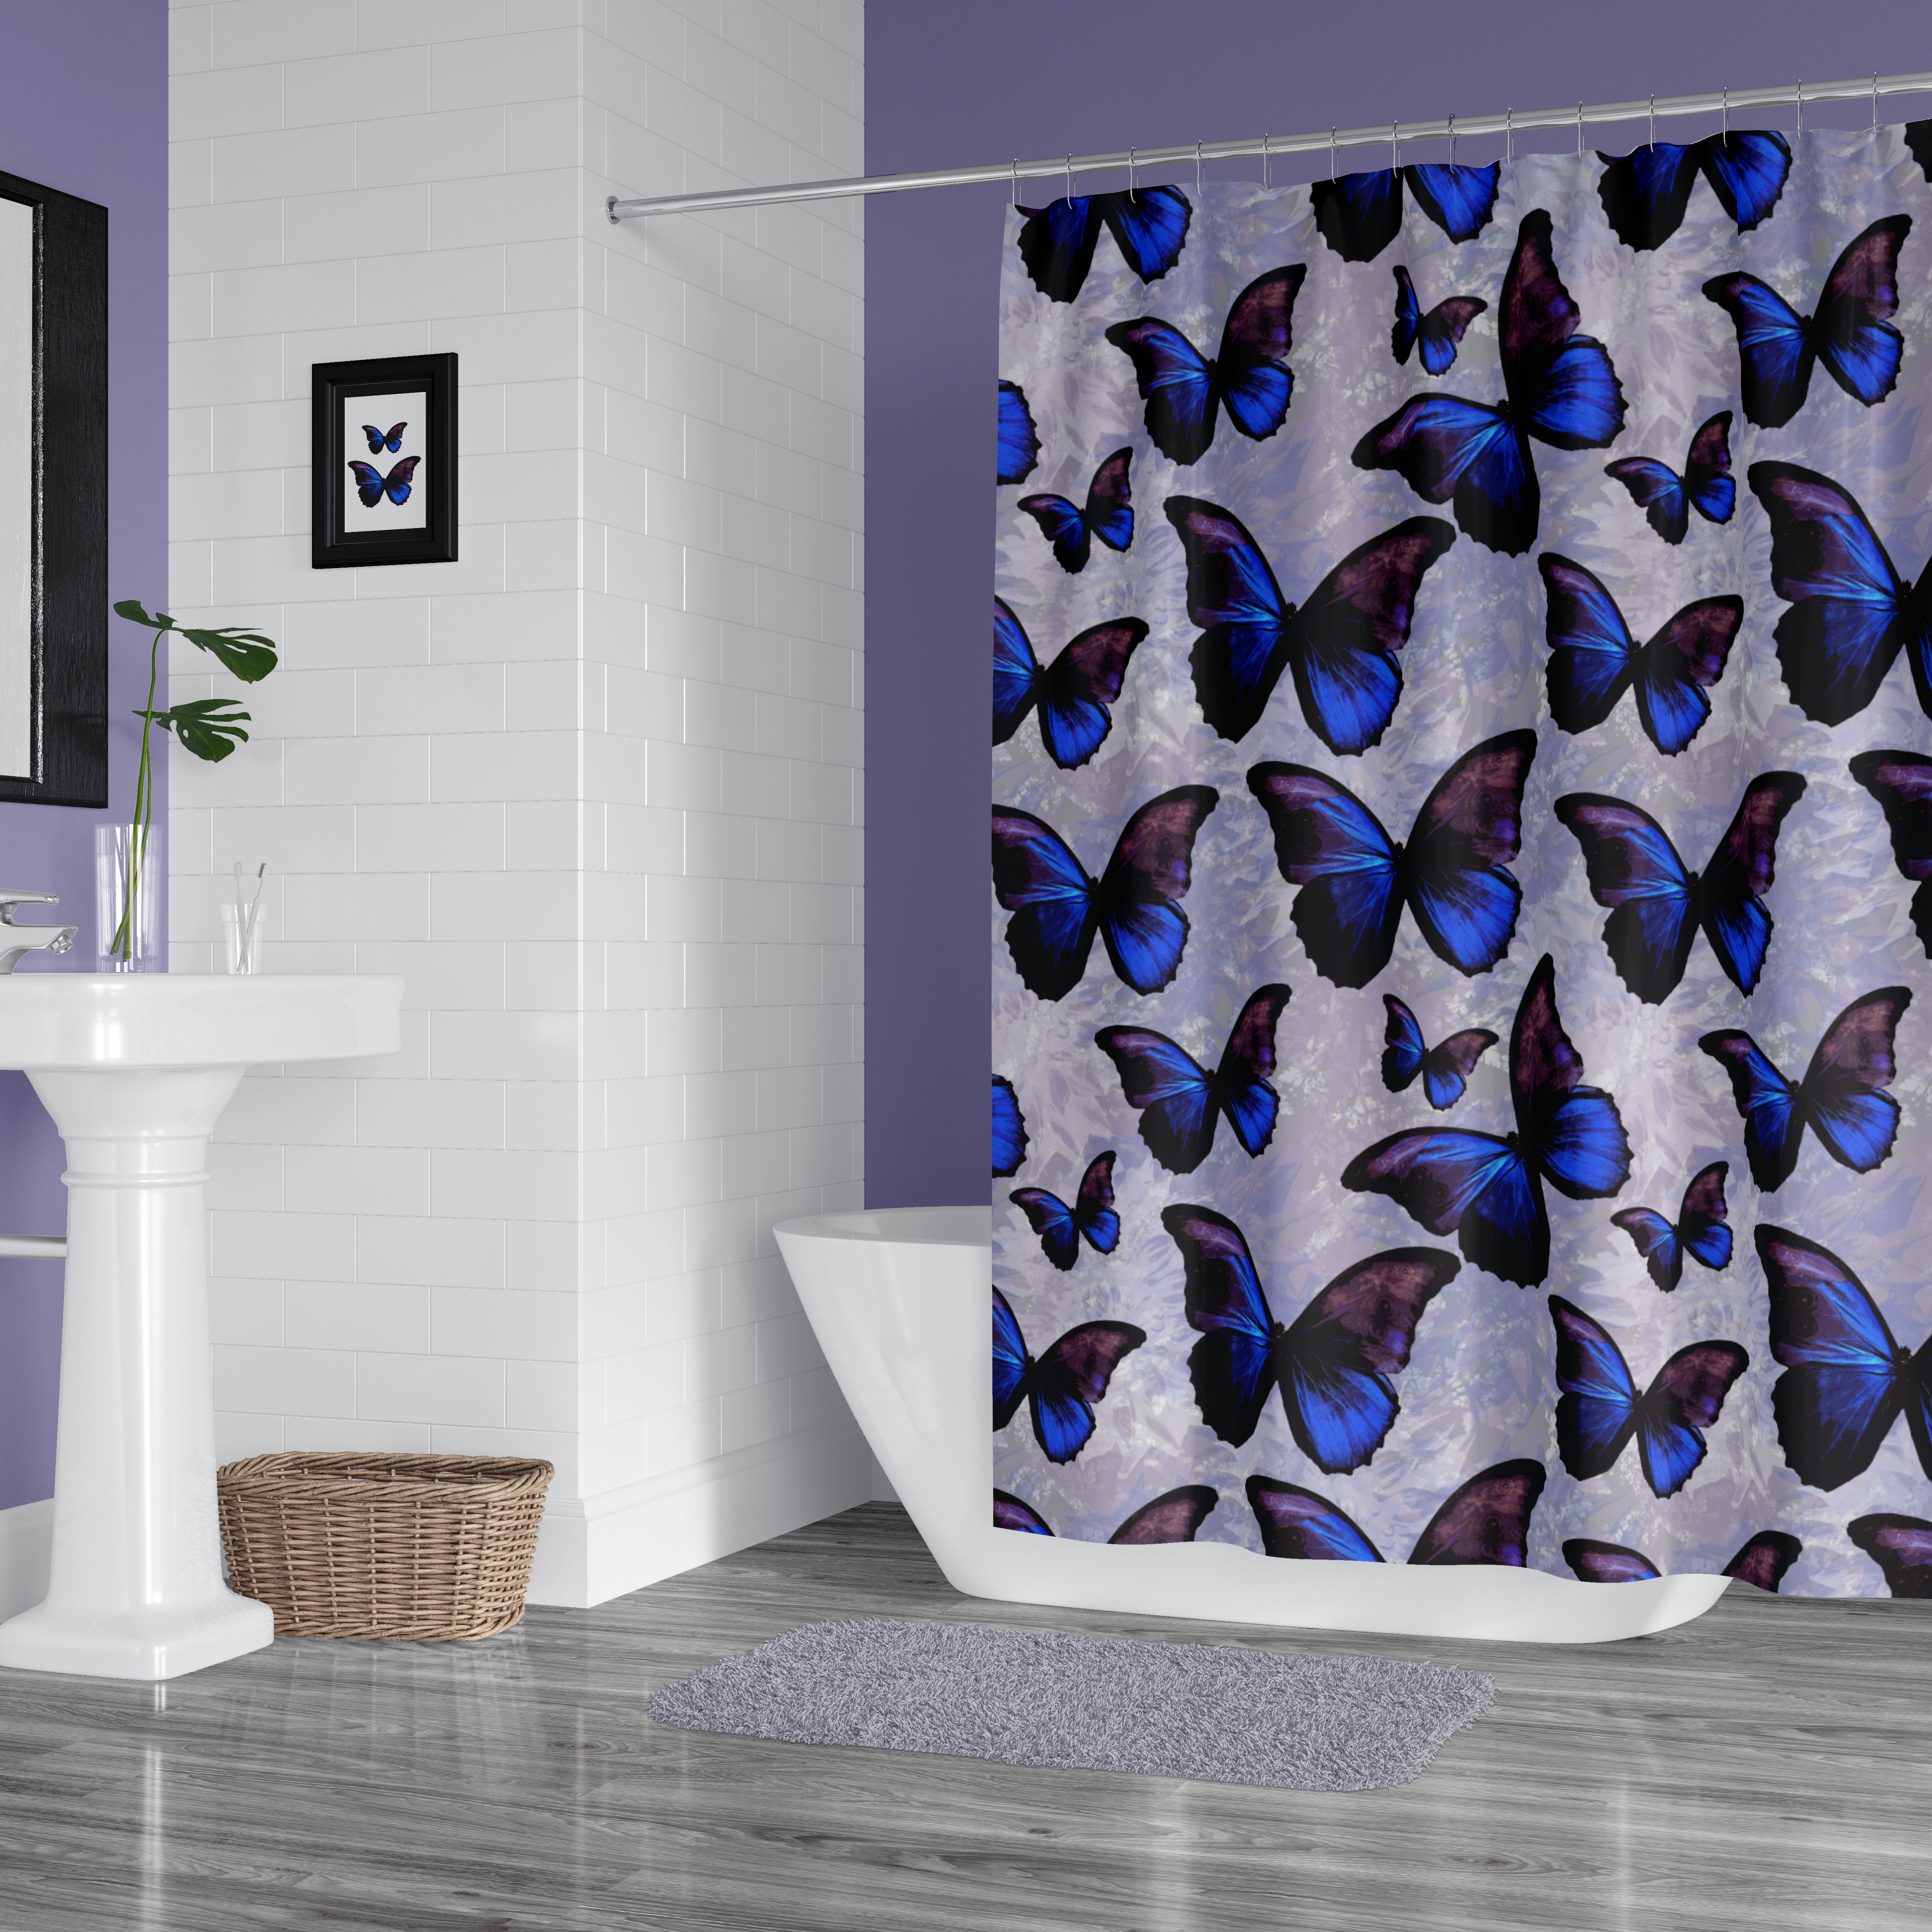 Purple And Blue Morpho Butterfly Shower Curtain Butterfly Shower